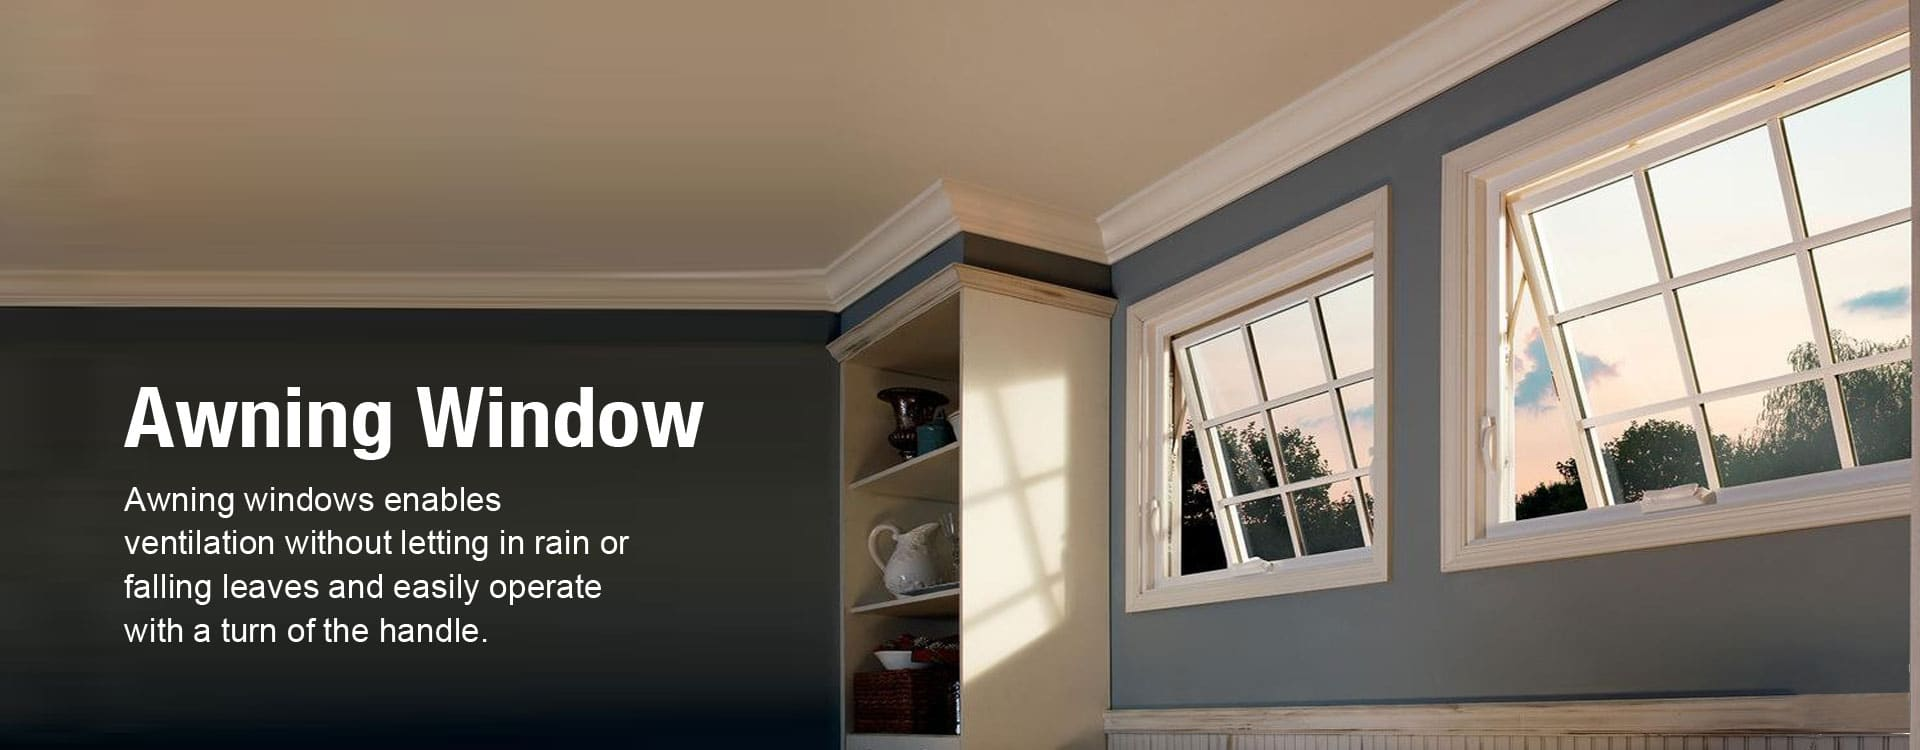 upvc awning or top hung window